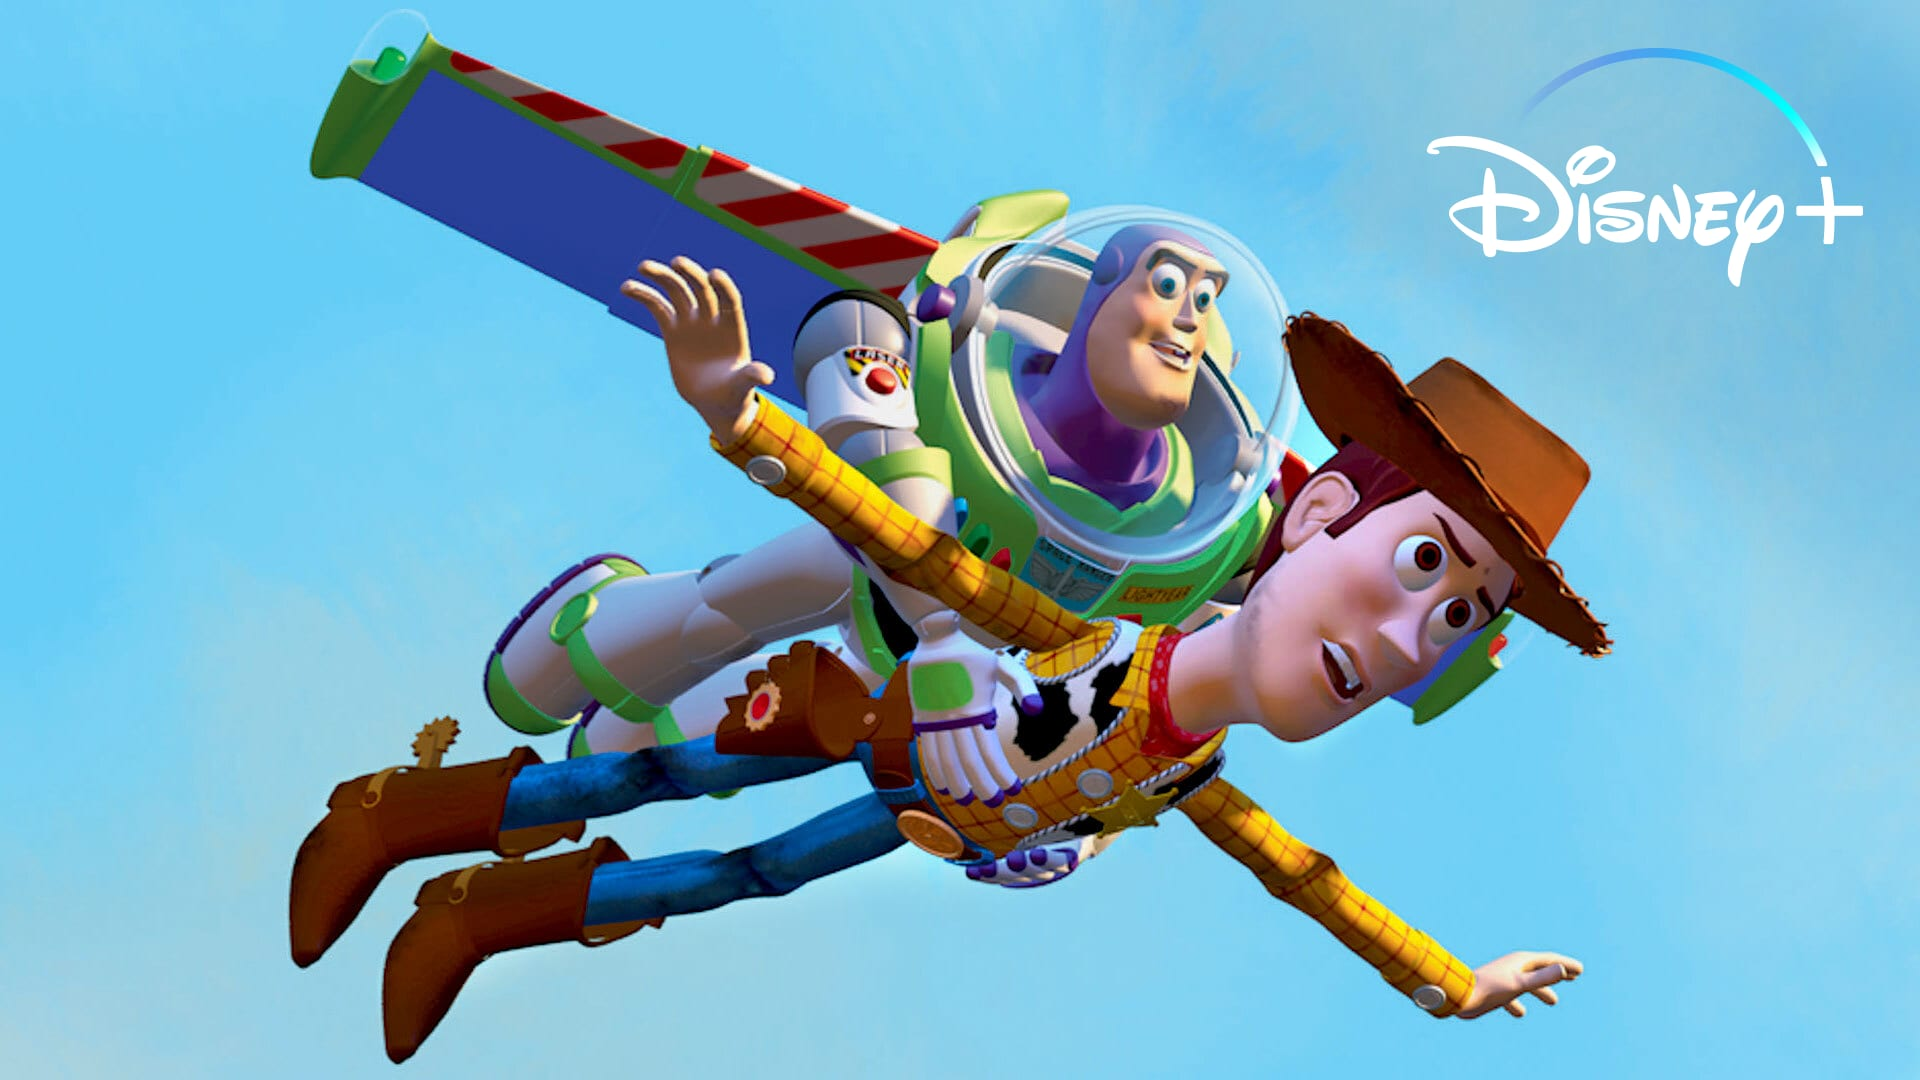 5 Times Toy Story's Woody Won Our Hearts | Disney+